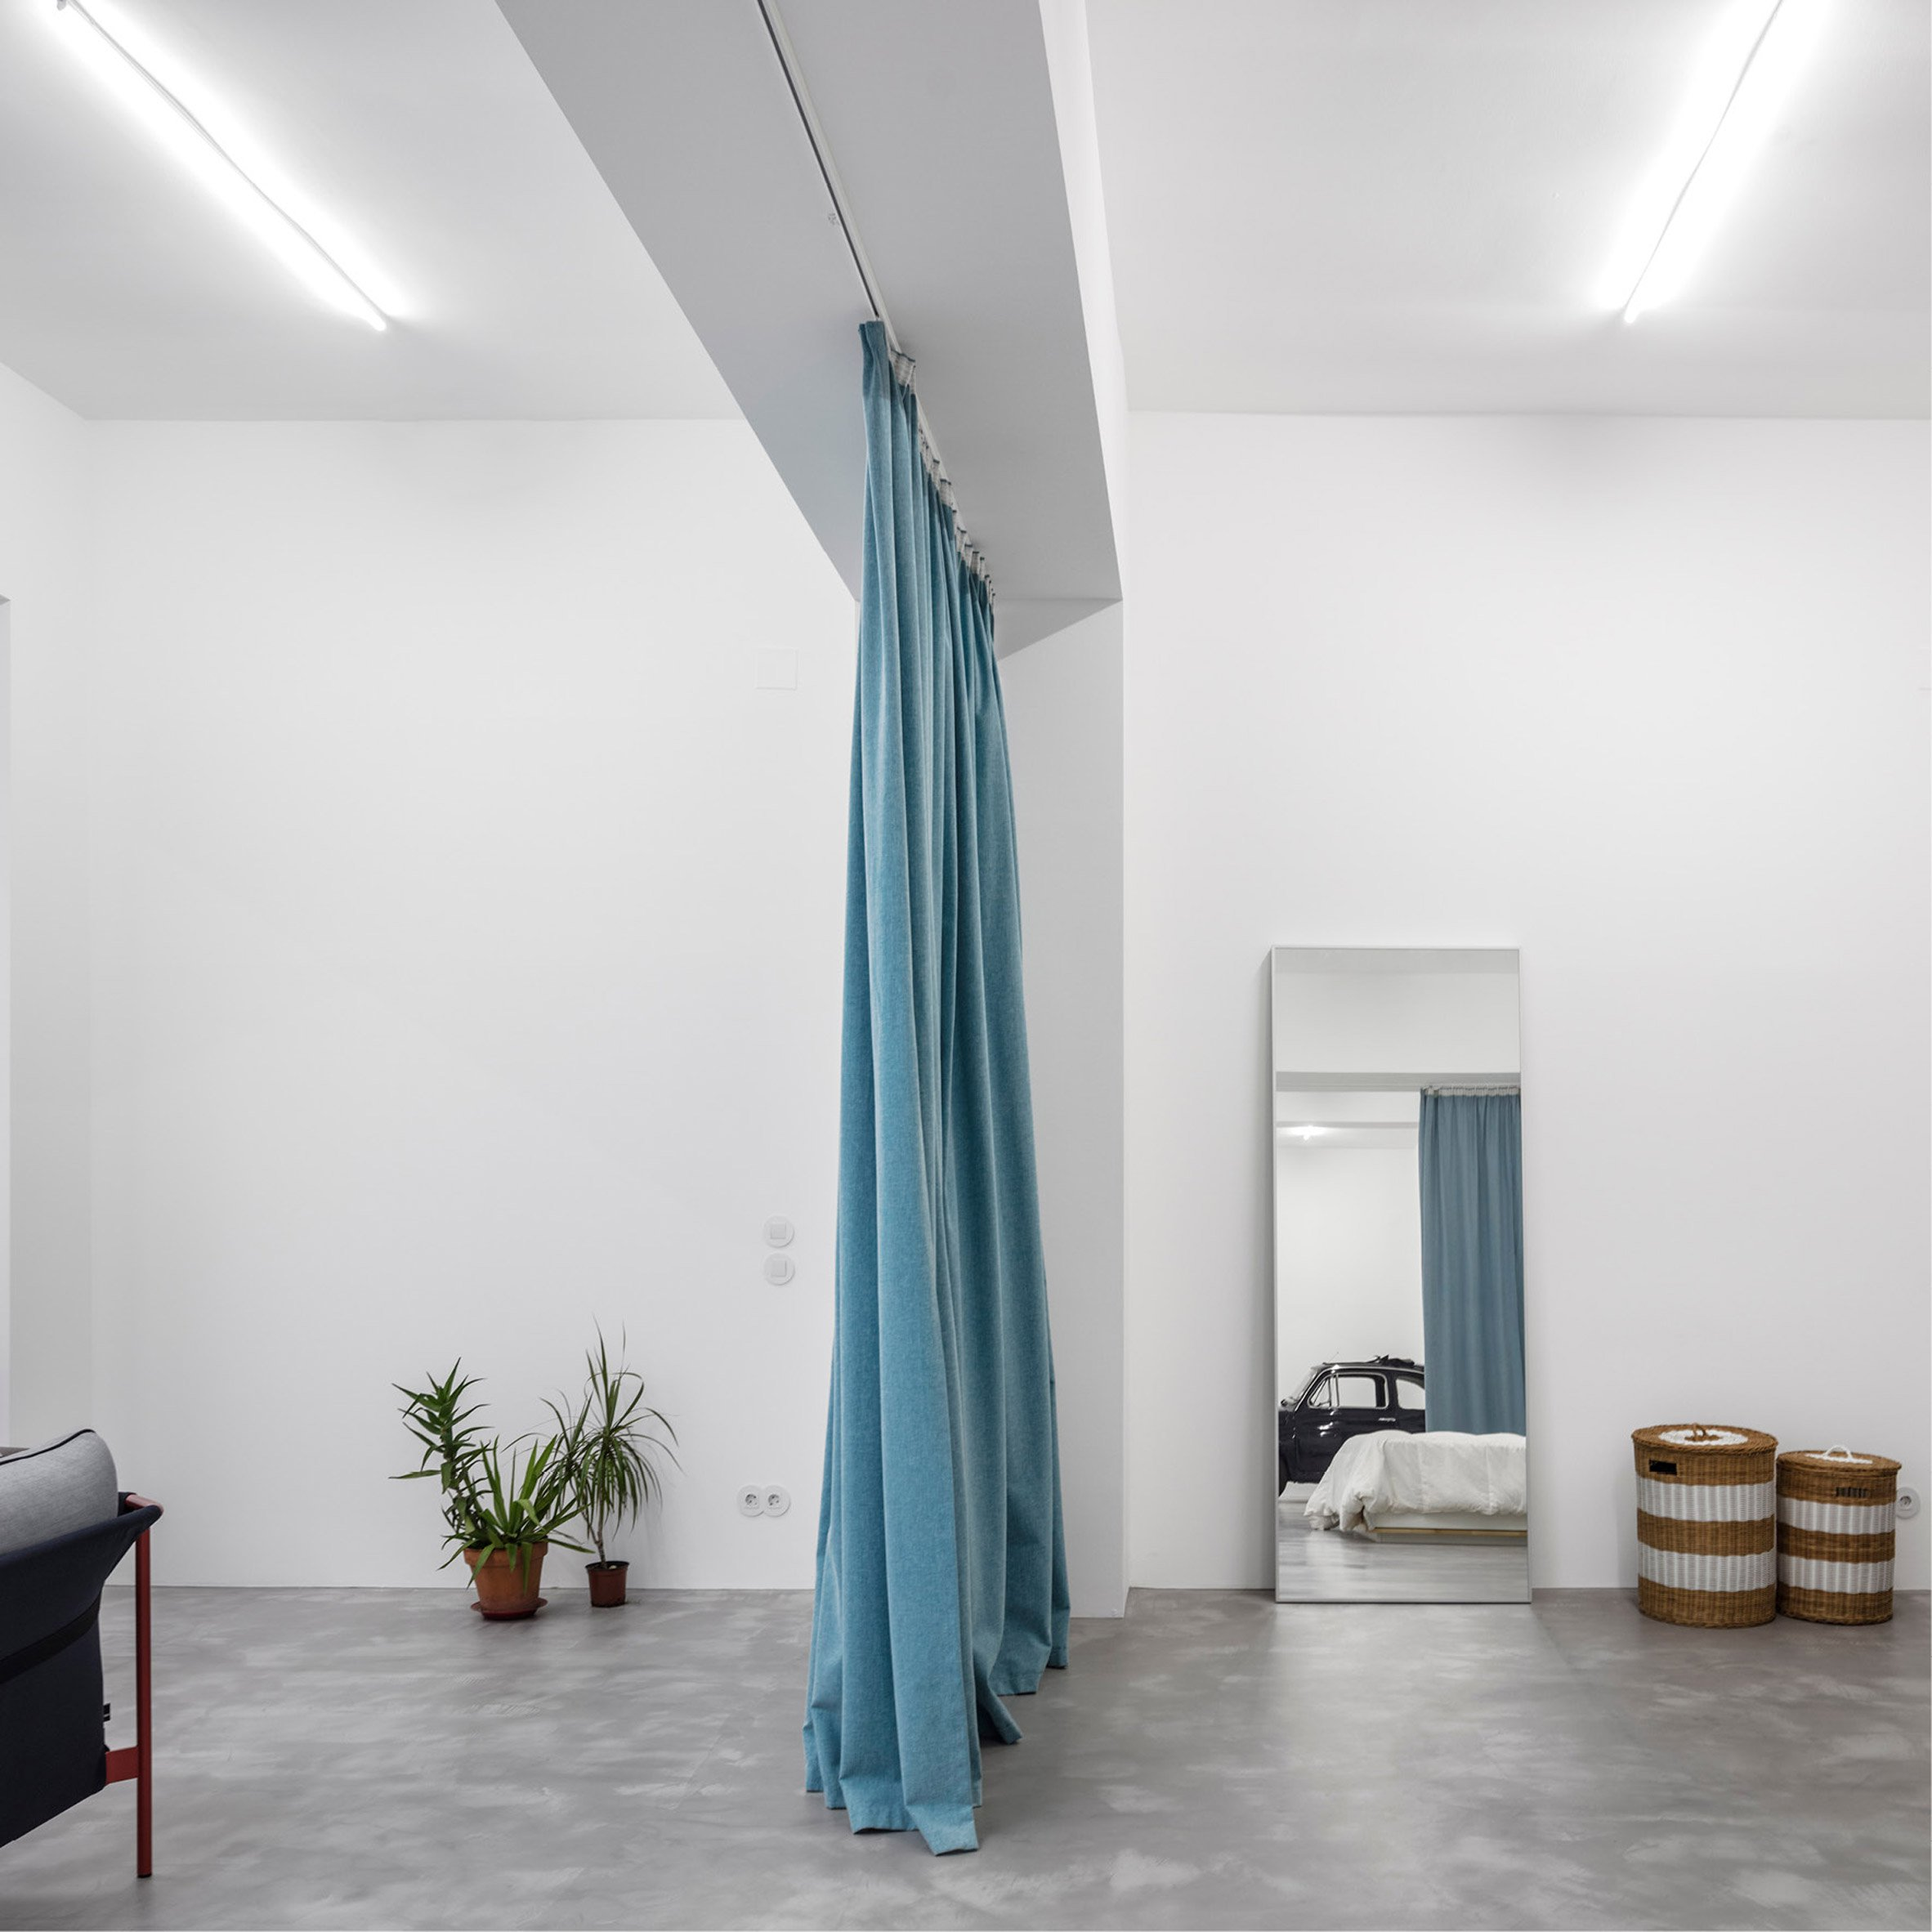 Design News: Portuguese Studio Fala Atelier Transforms Garage into Stunning Home design news Design News: Studio Fala Atelier Transforms Garage into Stunning Home Design News Portuguese Studio Fala Atelier Transforms Garage into Stunning Home 10